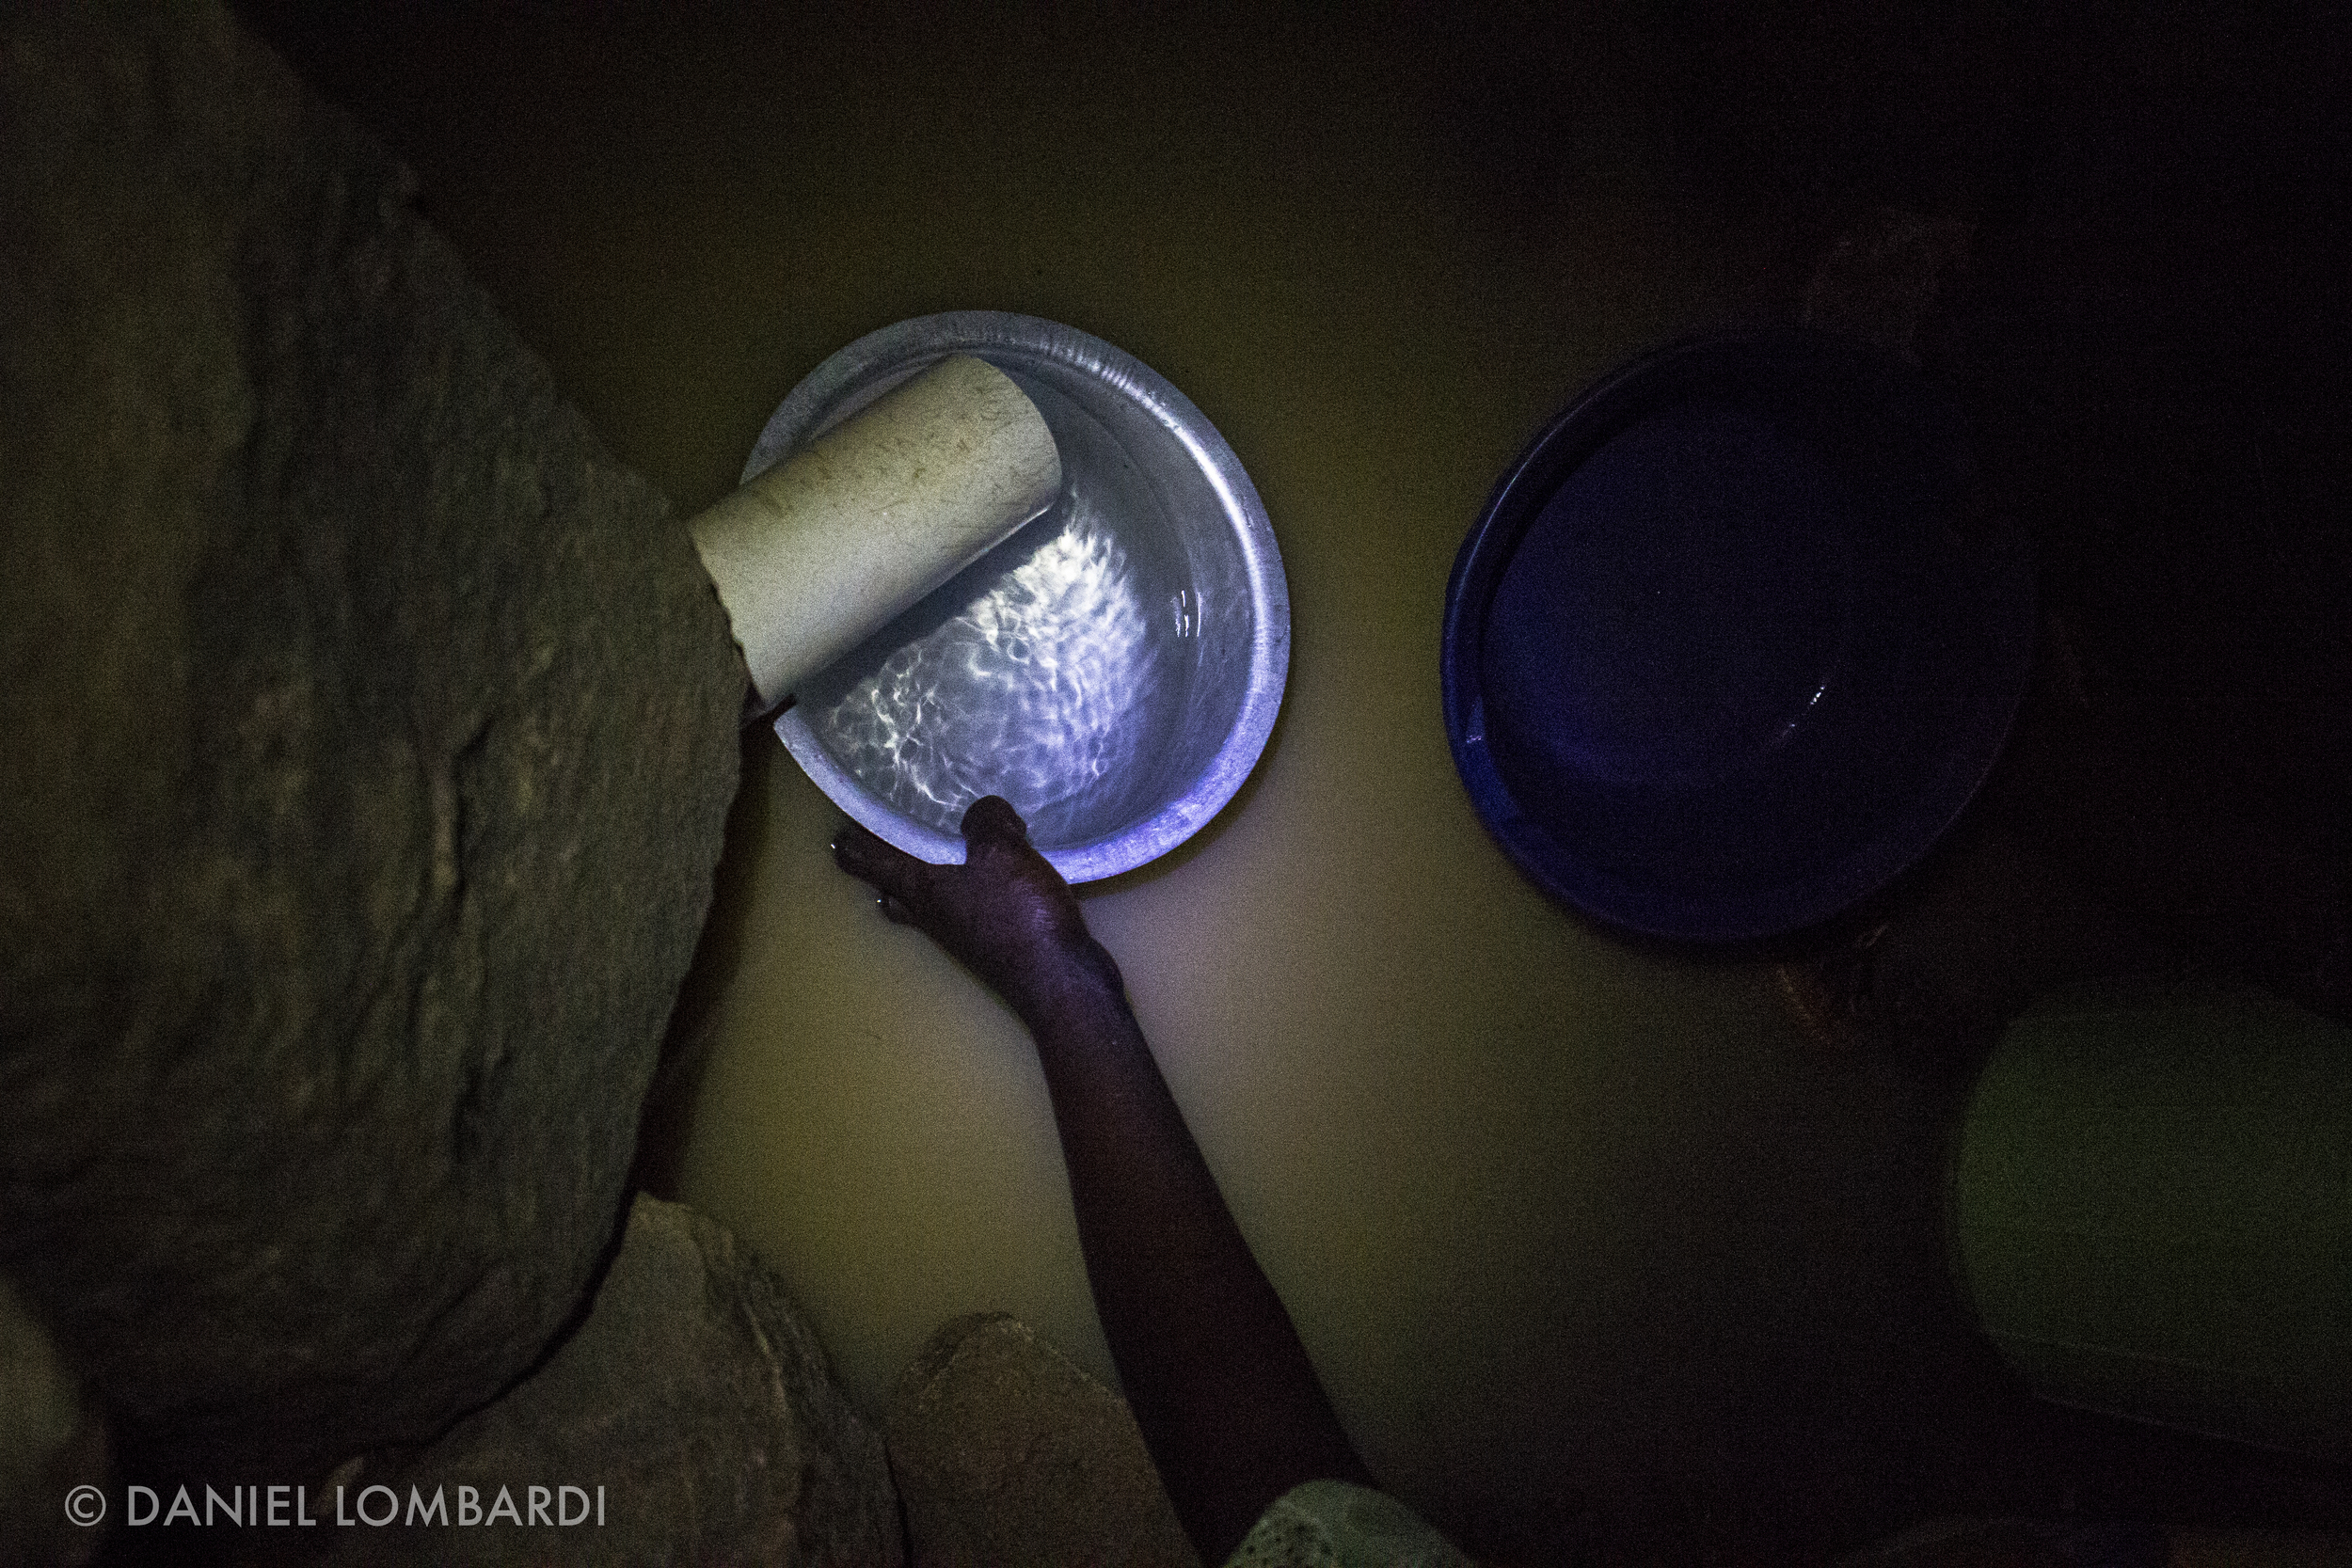 In the dark of night this woman uses a pan to fill her jerrycans scoop by scoop. She finds that the water flows more strongly at night as trees release their grip on the ground water so she can fill her jugs a little faster. However, there is a trade off, at night her fear of violent crime increases.